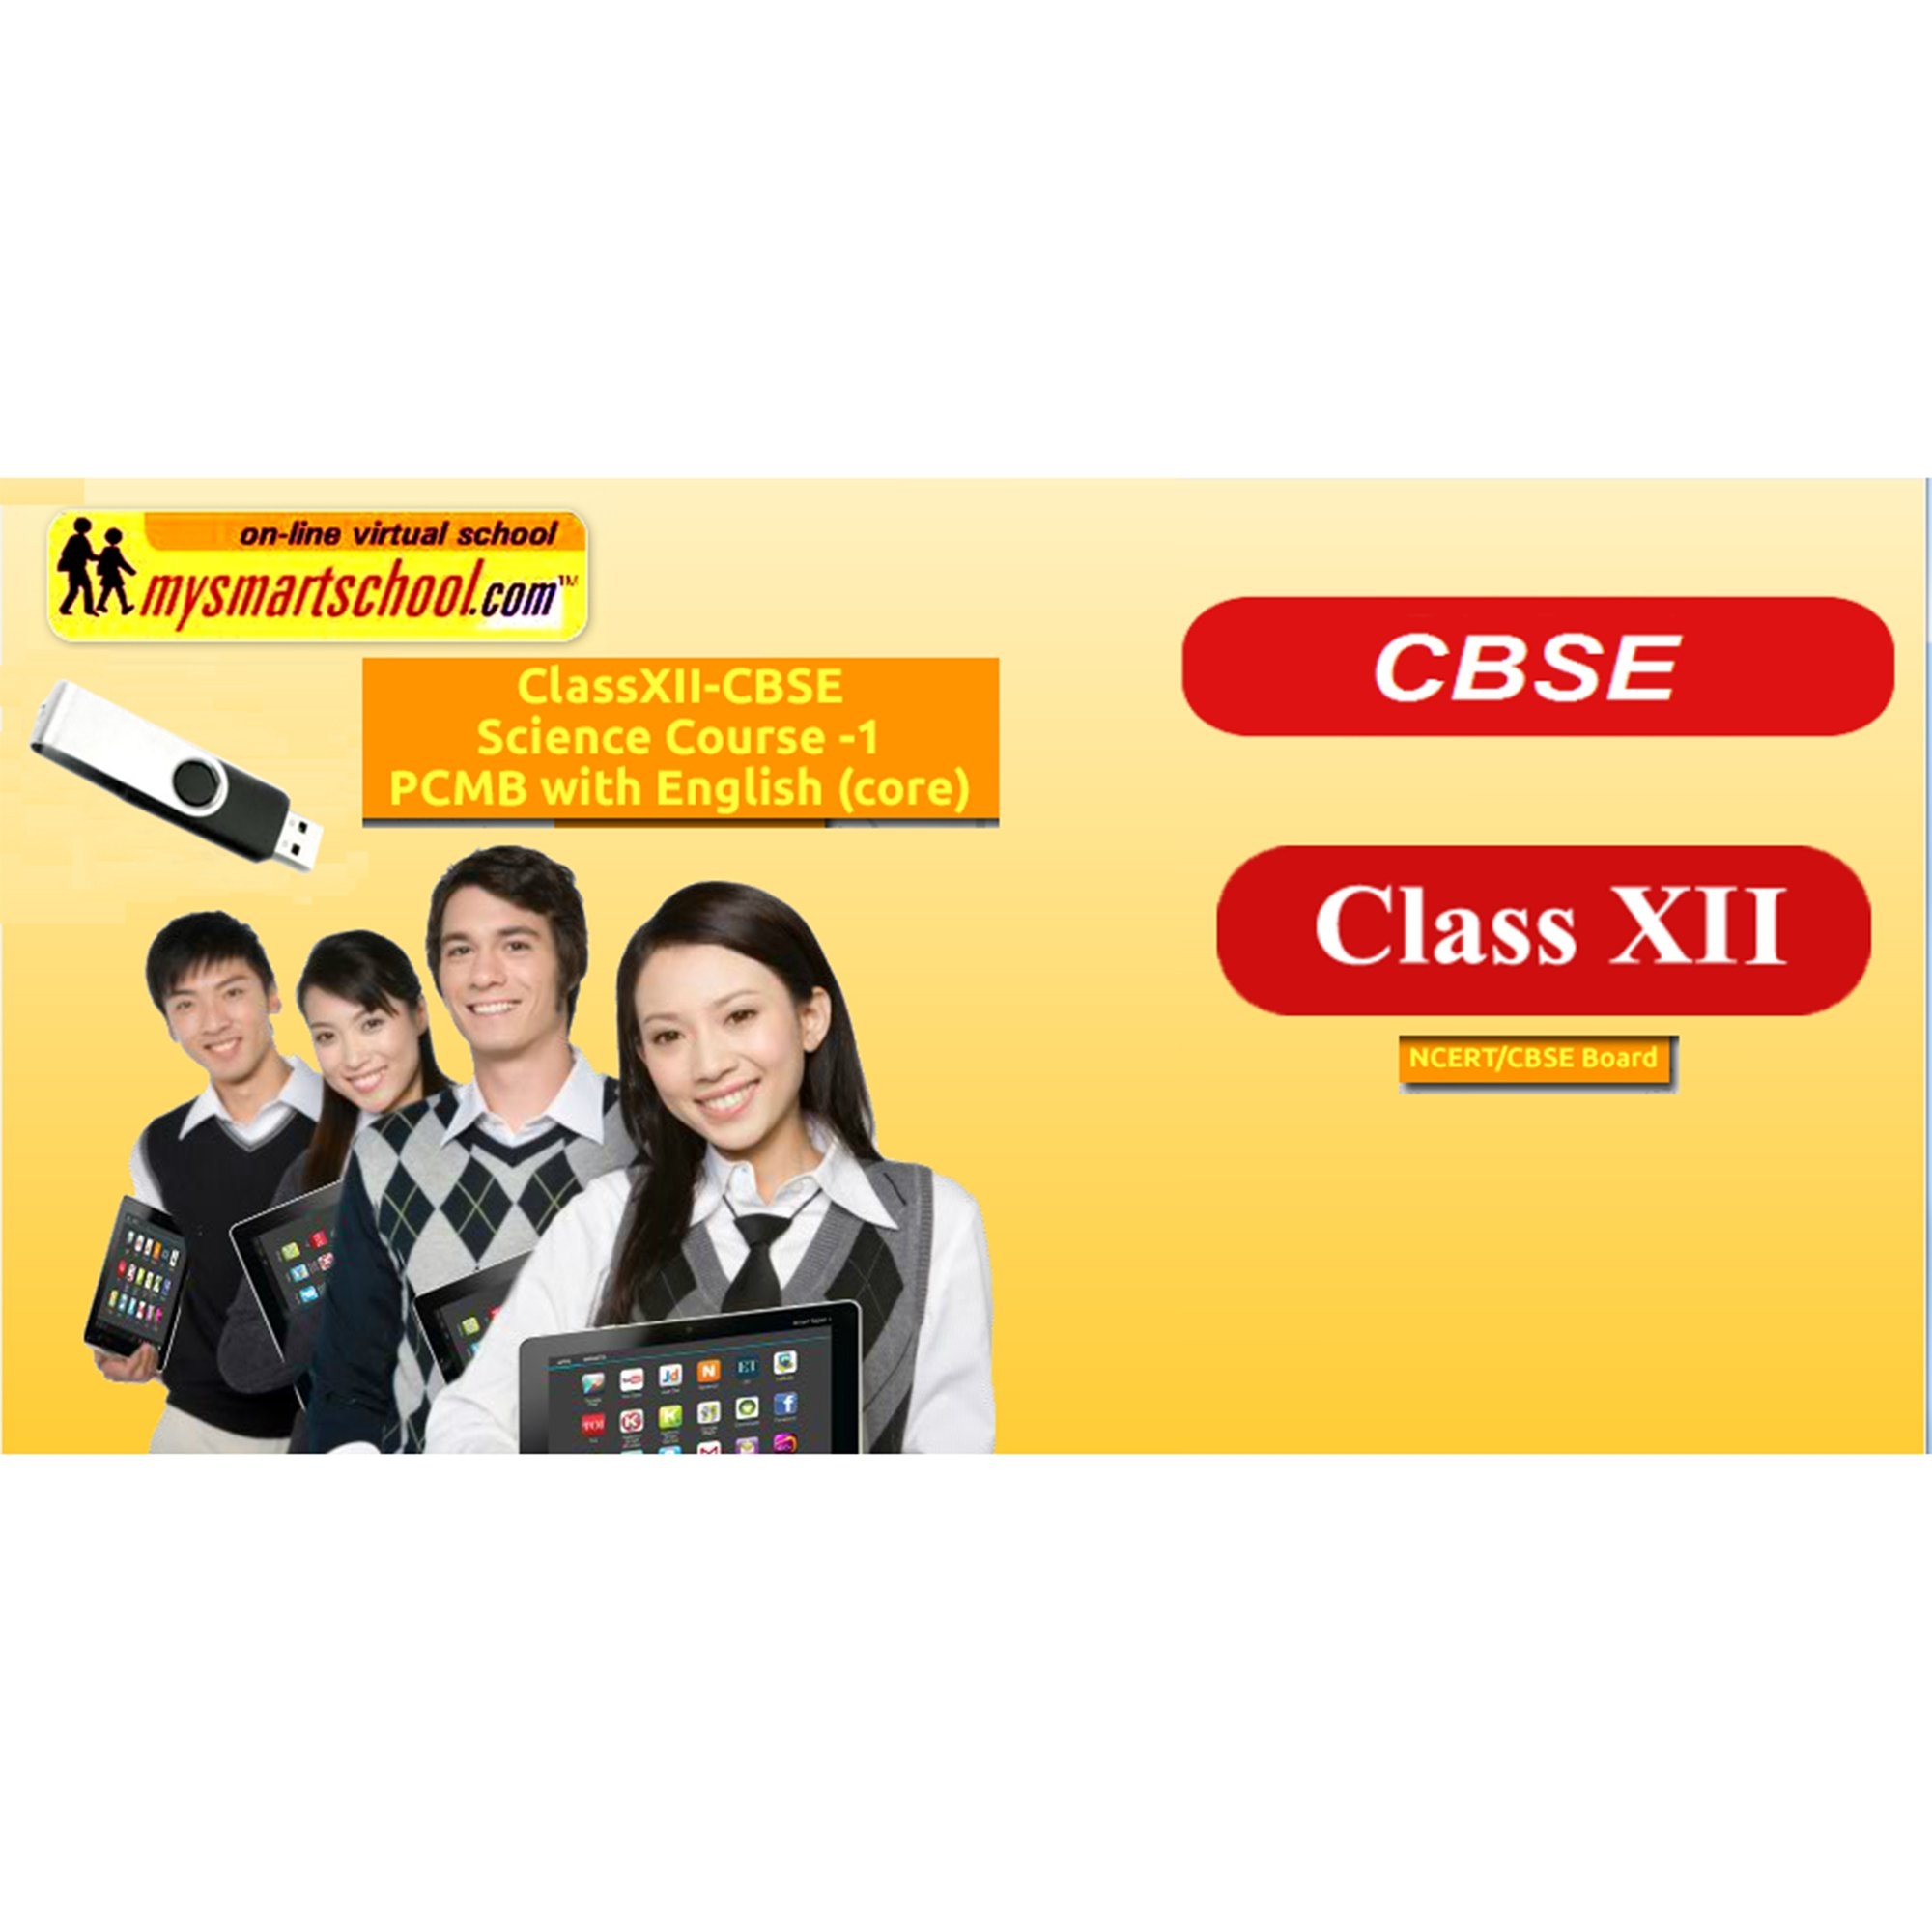 Class XII CBSE Science USB Pendrive Course (Physics Chemistry Maths Biology) with English (core) All Lessons are Interactive Multimedia with multiple Questions on the Basis of CBSE Evaluation by mysmartschool